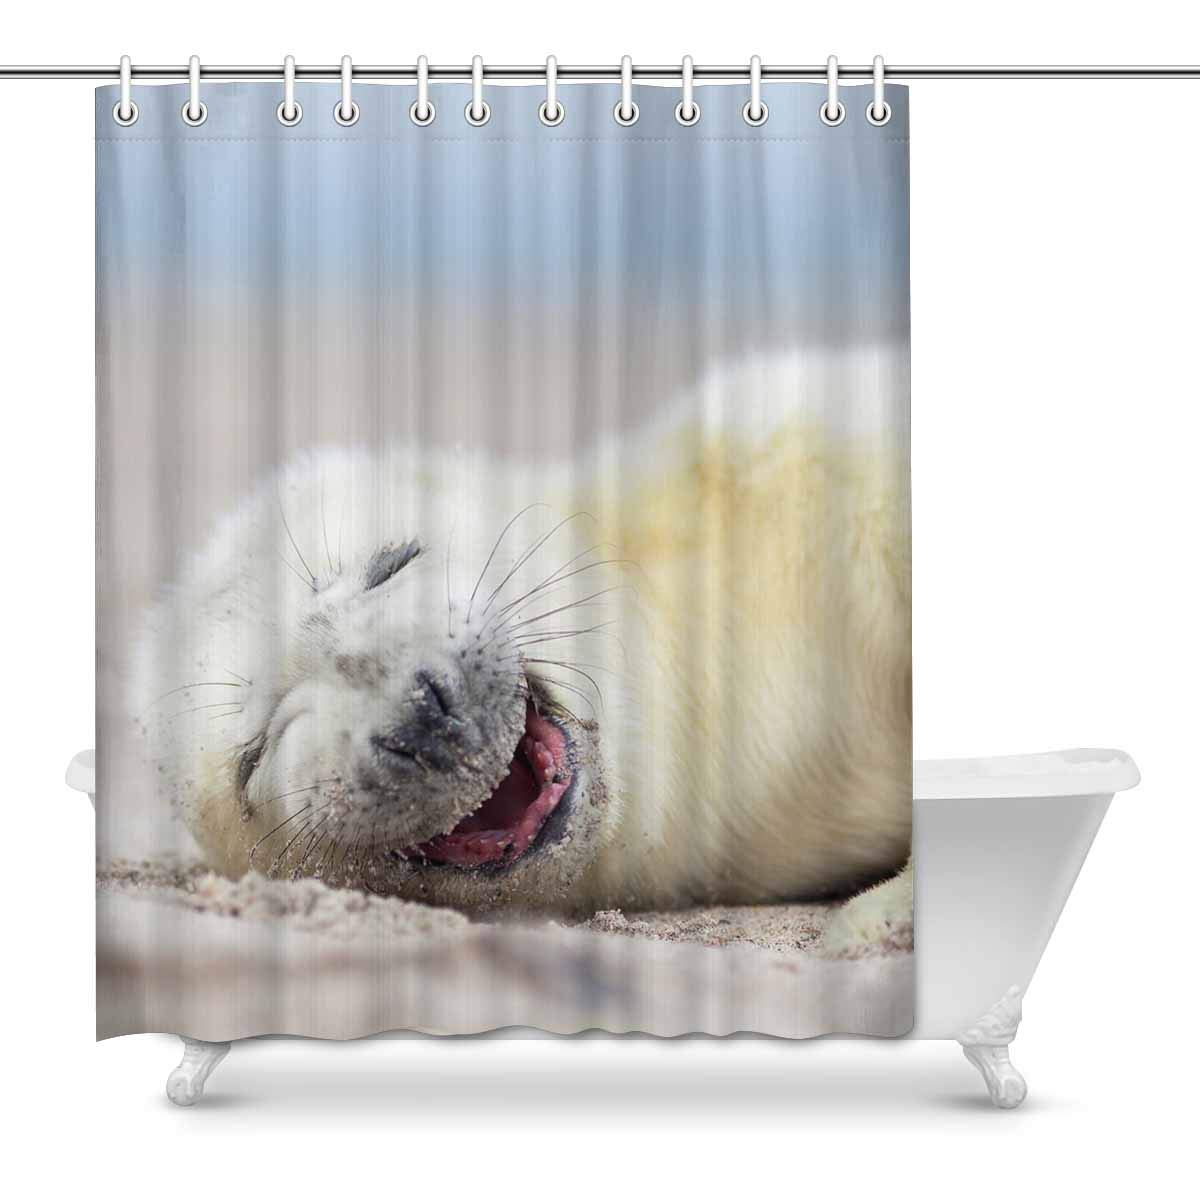 Mkhert Cute White Grey Seal Baby Relaxing At The Beach Home Decor Waterproof Polyester Bathroom Shower Curtain Bath Decorations 60x72 Inch